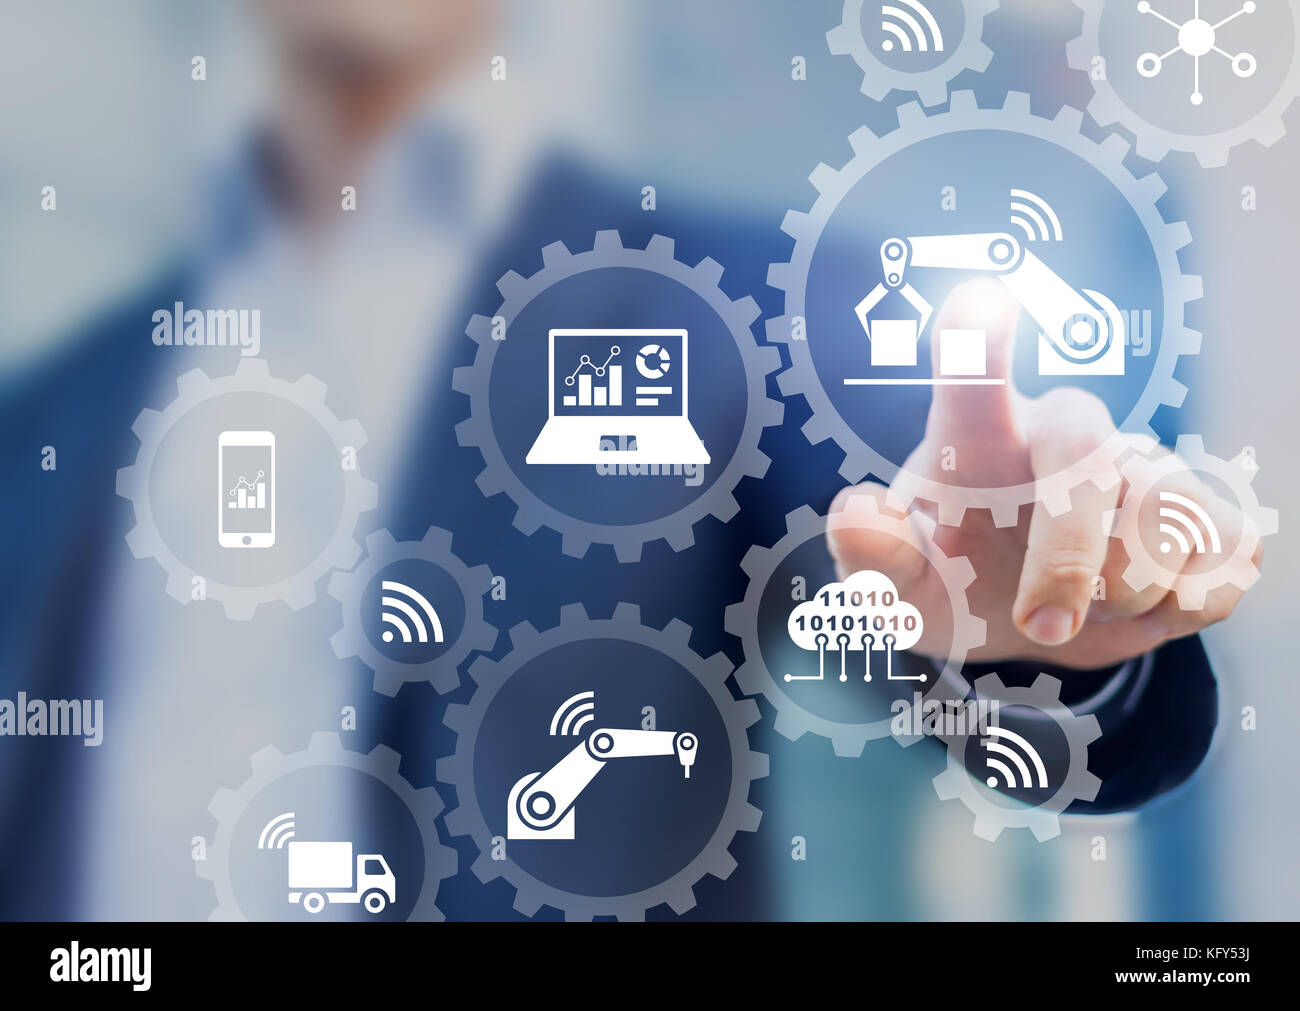 Smart factory and industry 4.0 concept with connected production robots exchanging data with internet of things - Stock Image